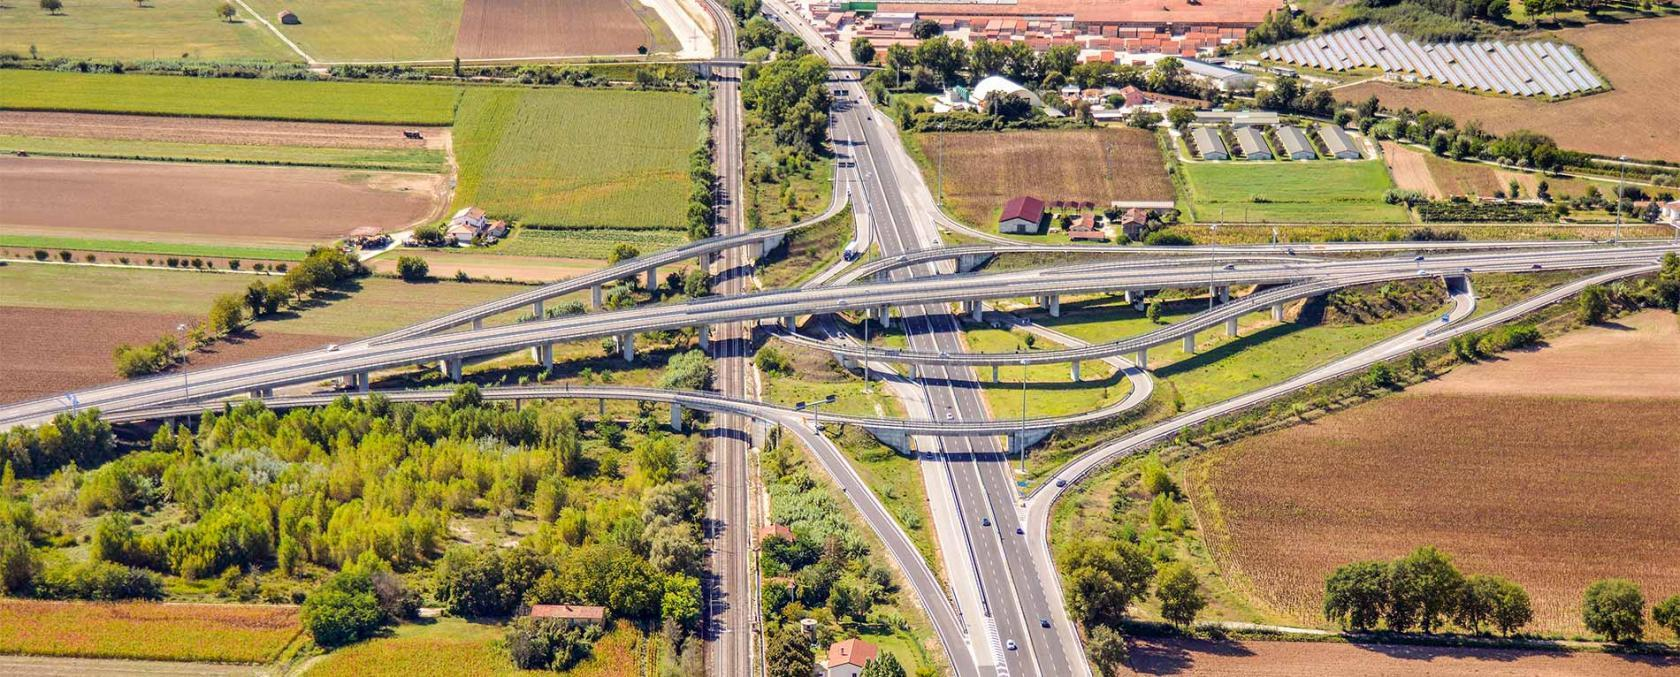 This is a picture of a road interchange taken from above (one road passes over the other).